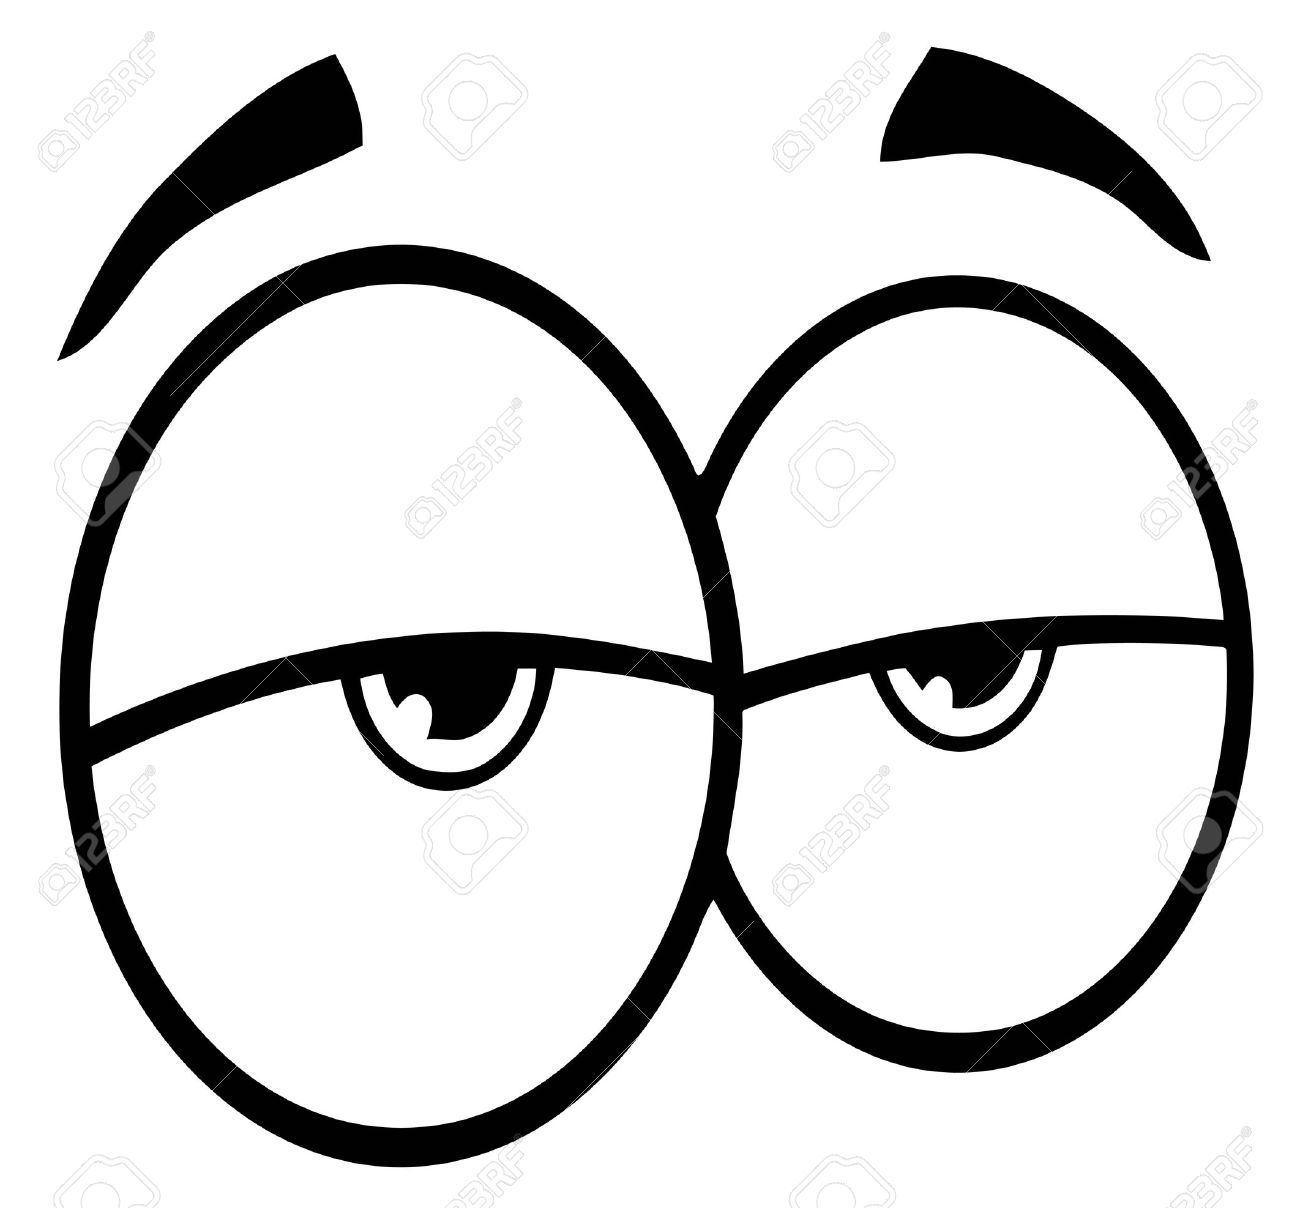 Outlined Sad Cartoon Eyes Royalty Free Cliparts Vectors And